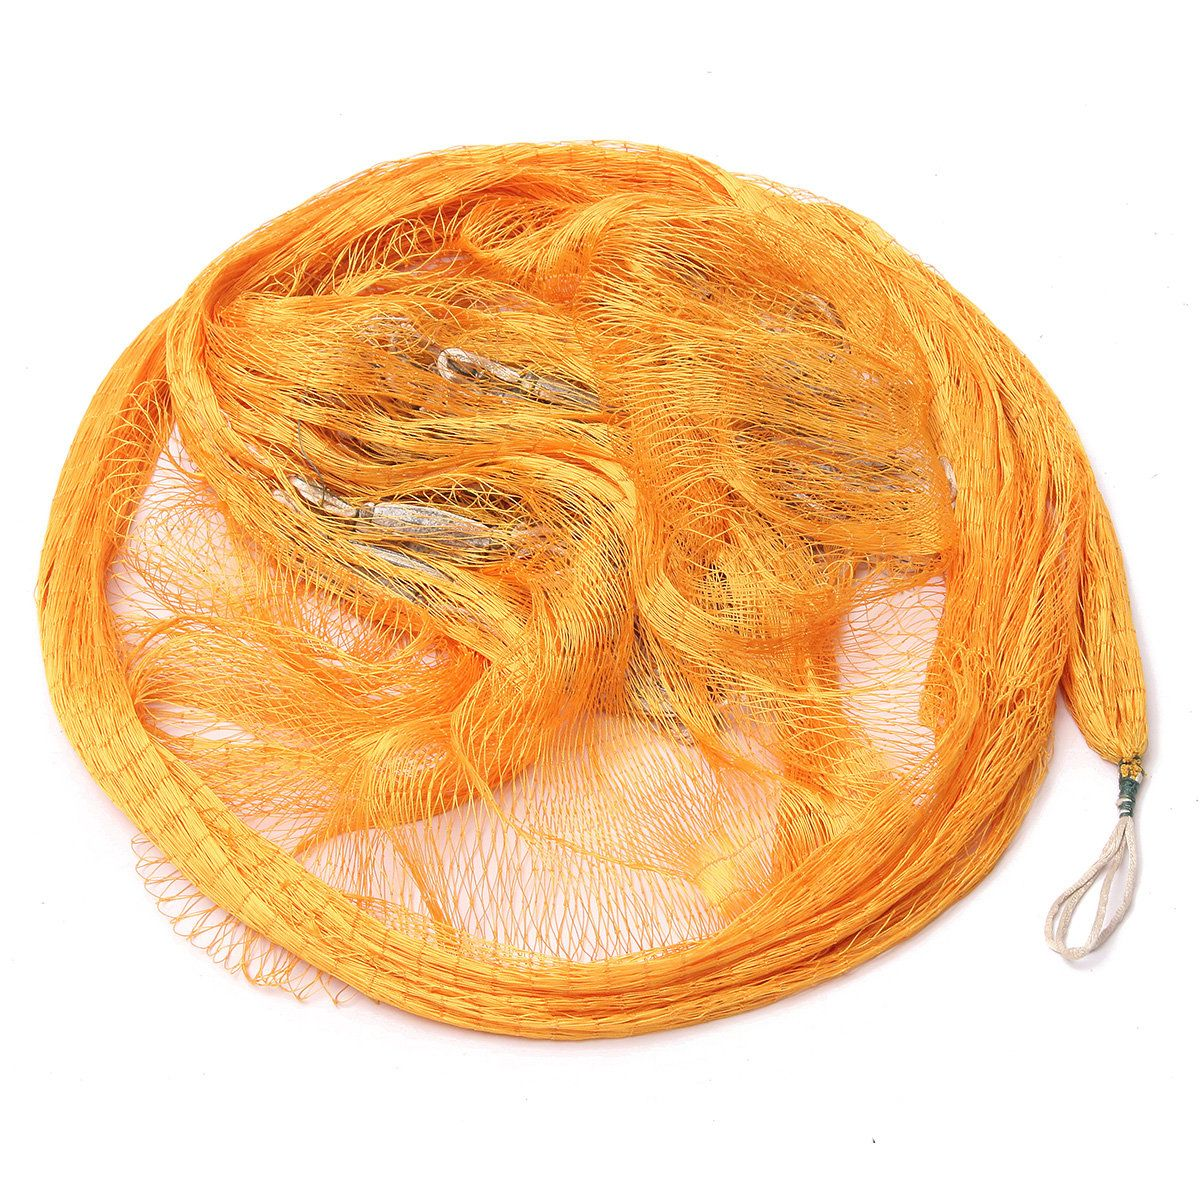 XXJ US$38.73 ZANLURE 3.2 x 2m Nylon Monofilament Fishing Gill Net for Hand Casting Fishing Tackle Mesh